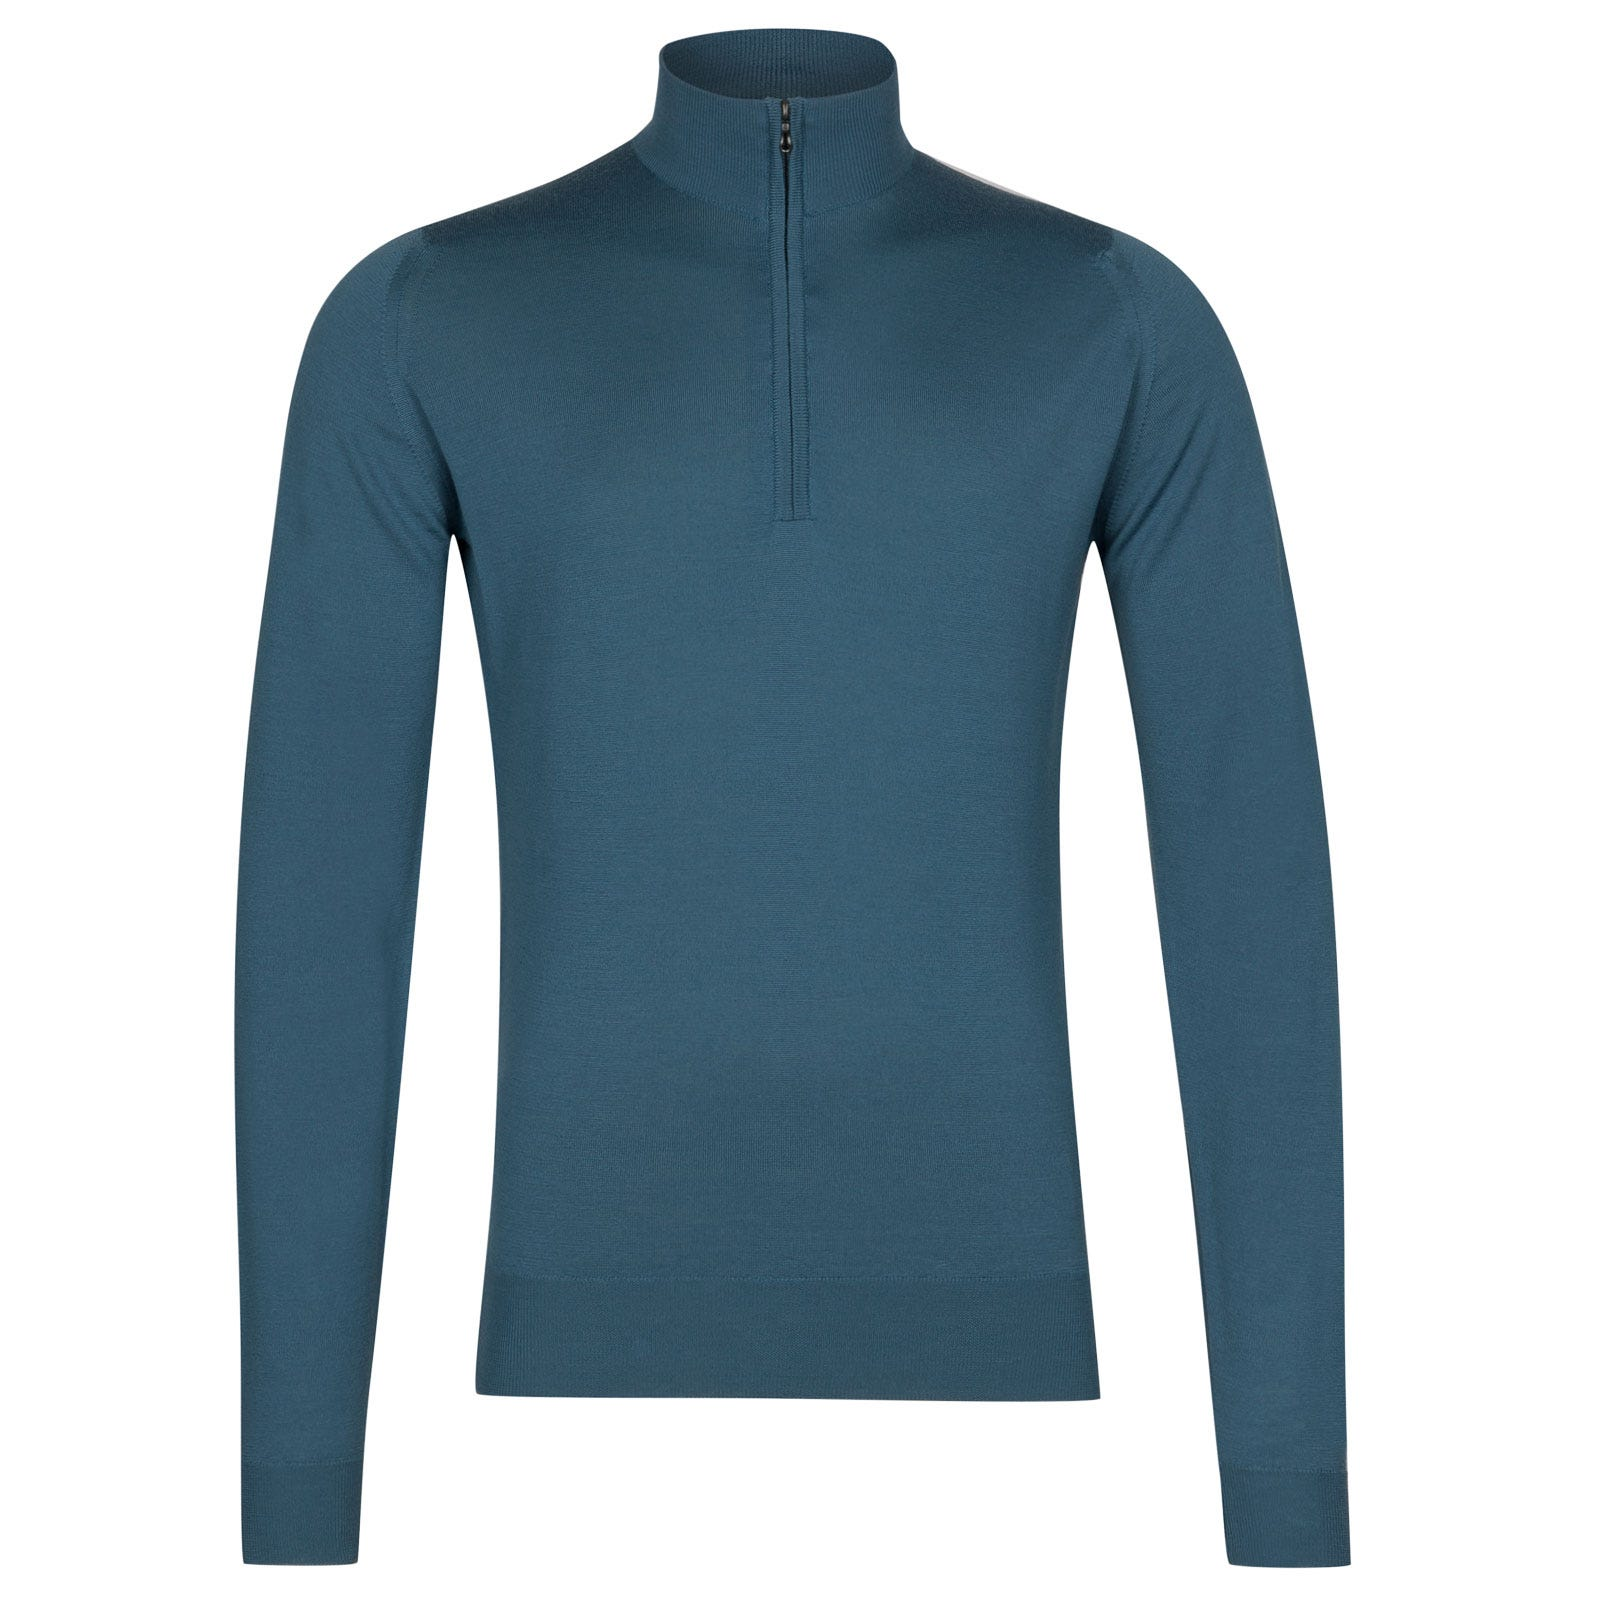 John Smedley Barrow Merino Wool Pullover in Bias Blue-XXL